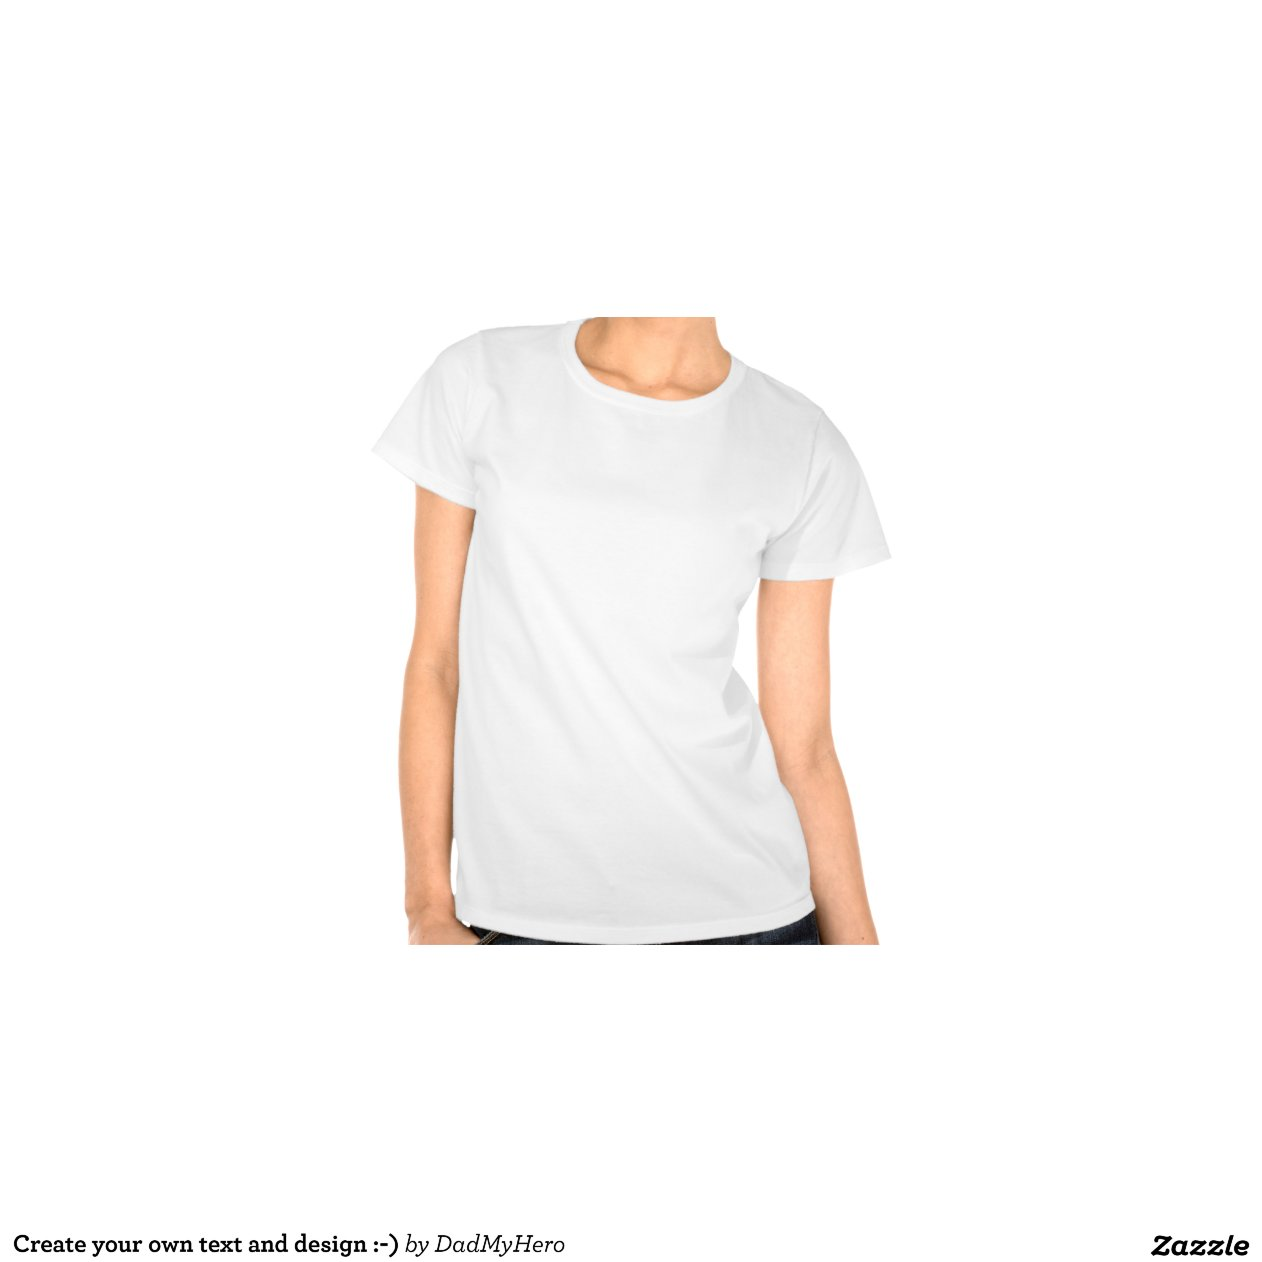 Make your own shirts and hoodies